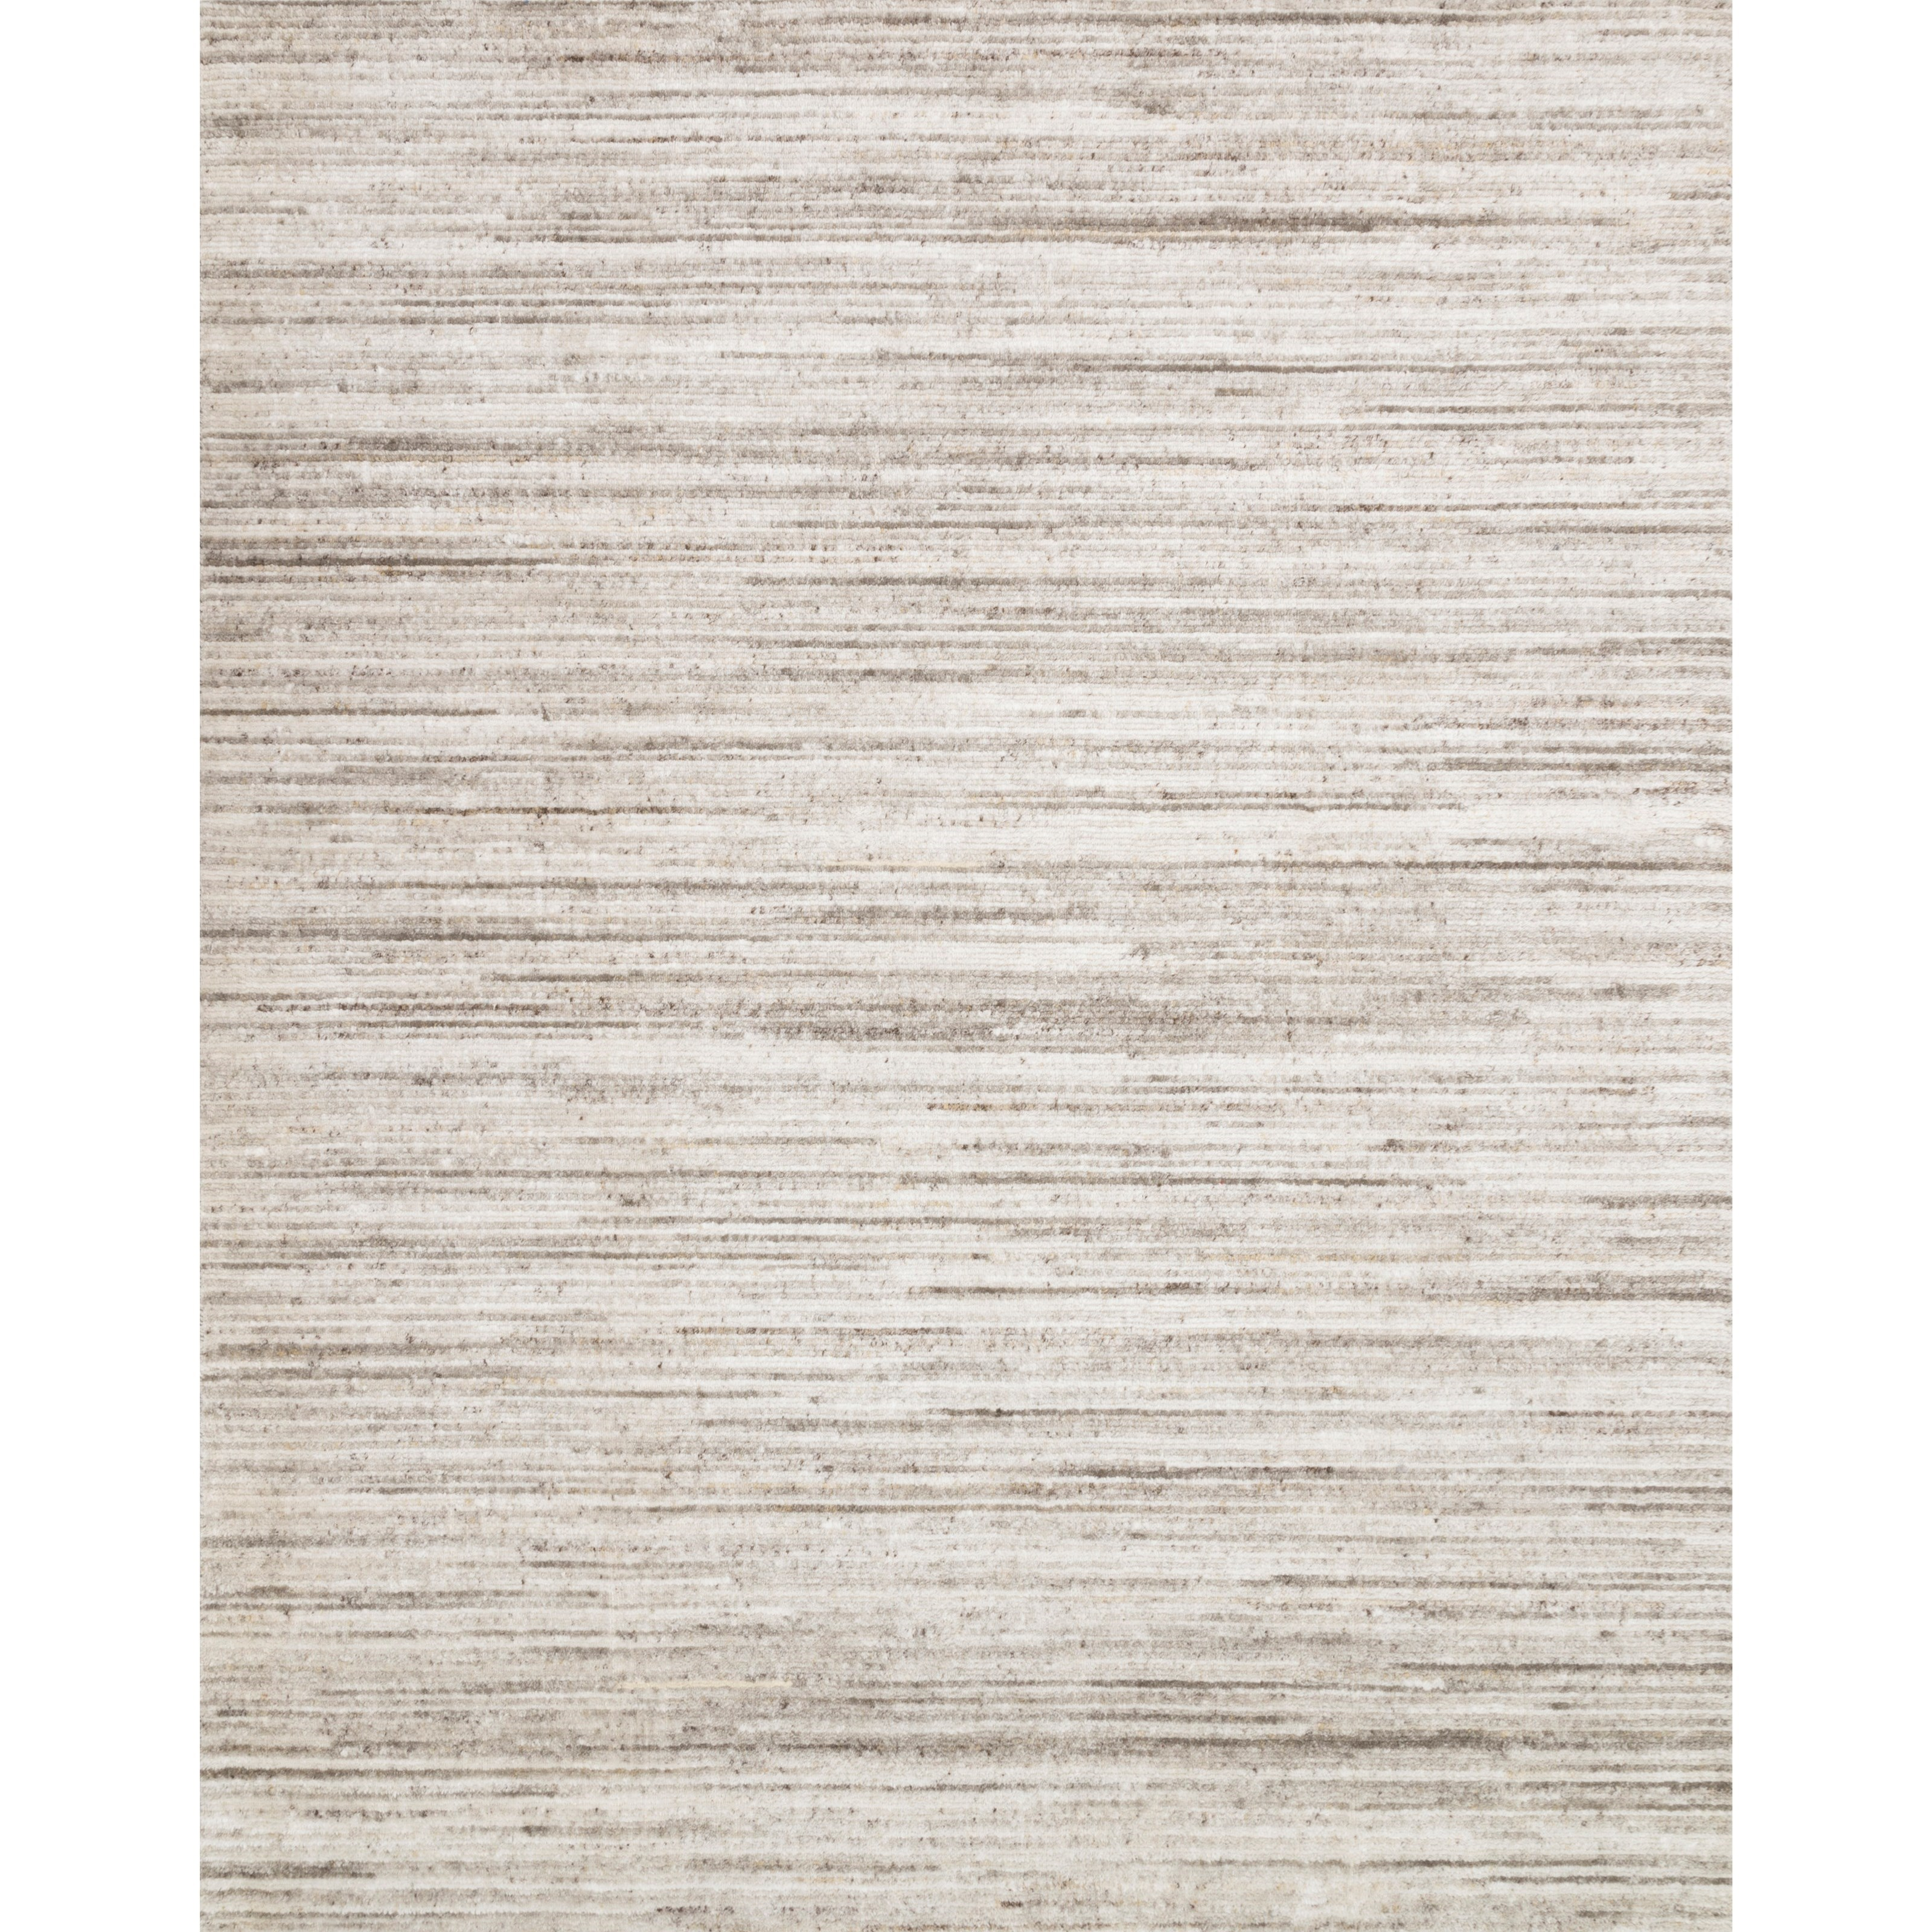 """Brandt 5'6"""" x 8'6"""" Ivory / Oatmeal Rug by Loloi Rugs at Virginia Furniture Market"""